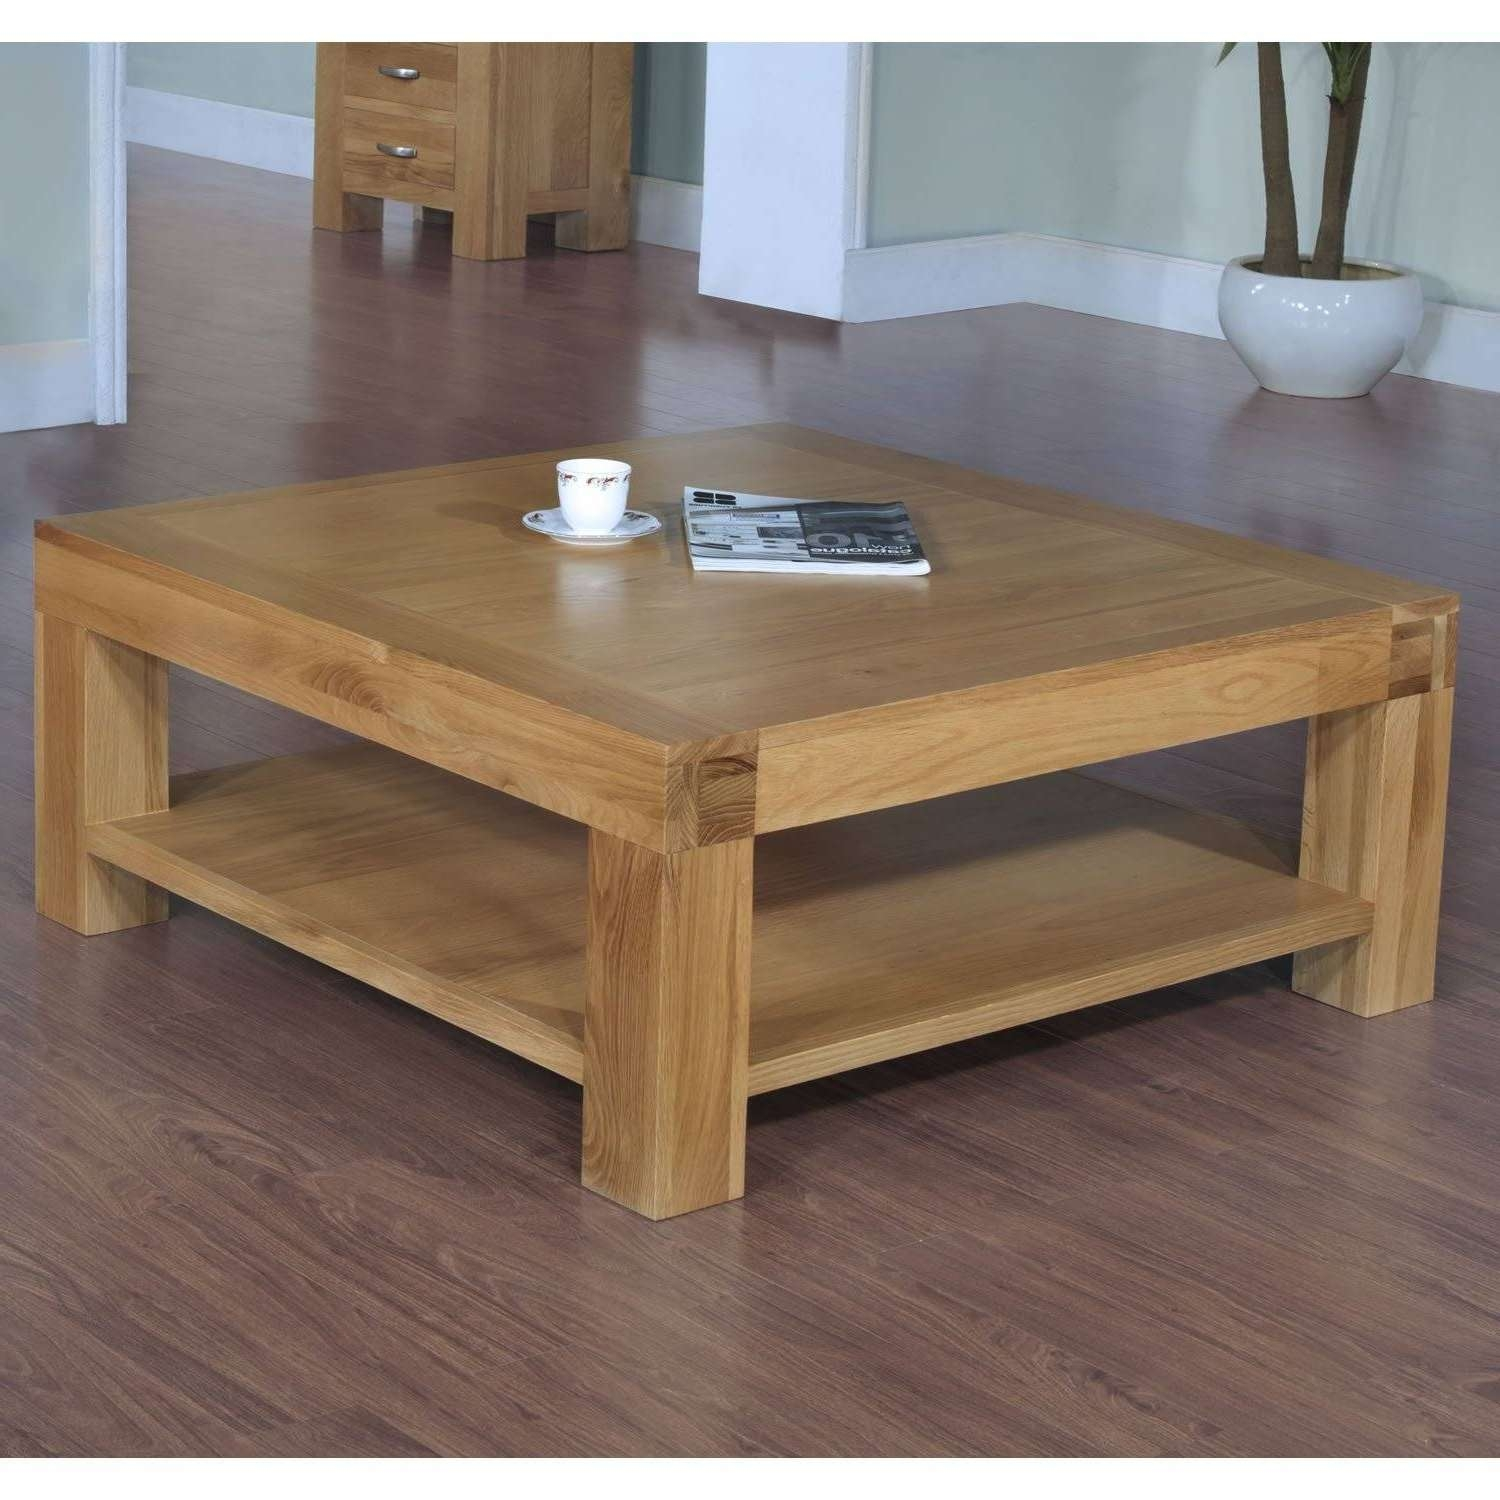 Oak Coffee Table With Glass Top – Glass Coffee Table With 2017 Oak Coffee Table With Glass Top (View 12 of 20)